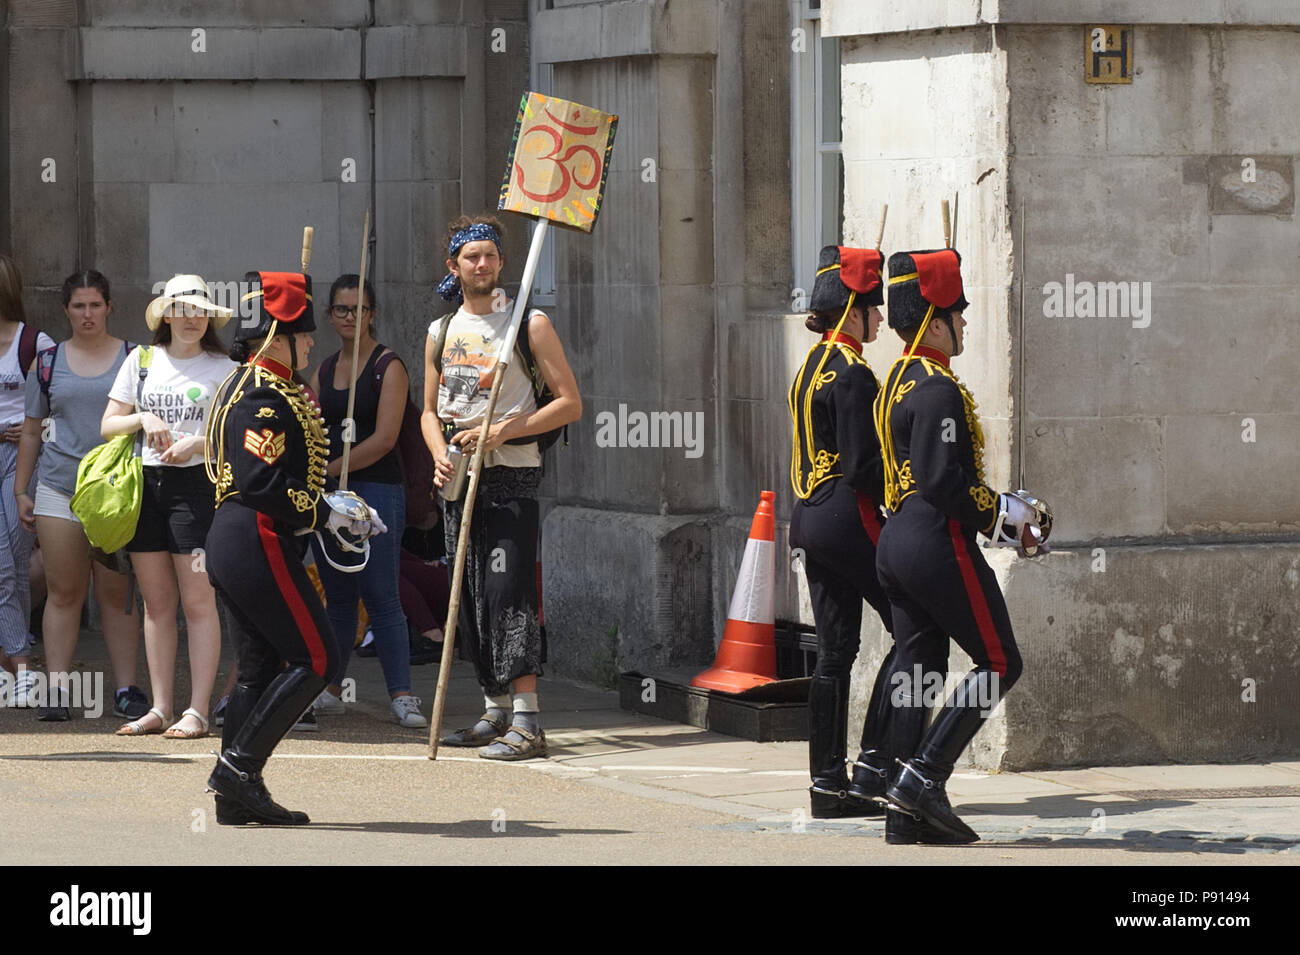 King S Troop Royal Horse Artillery Women Walking To Barracks With Swords Drawn And A Man Holding Sacred Aum Symbol For Peace Stock Photo Alamy